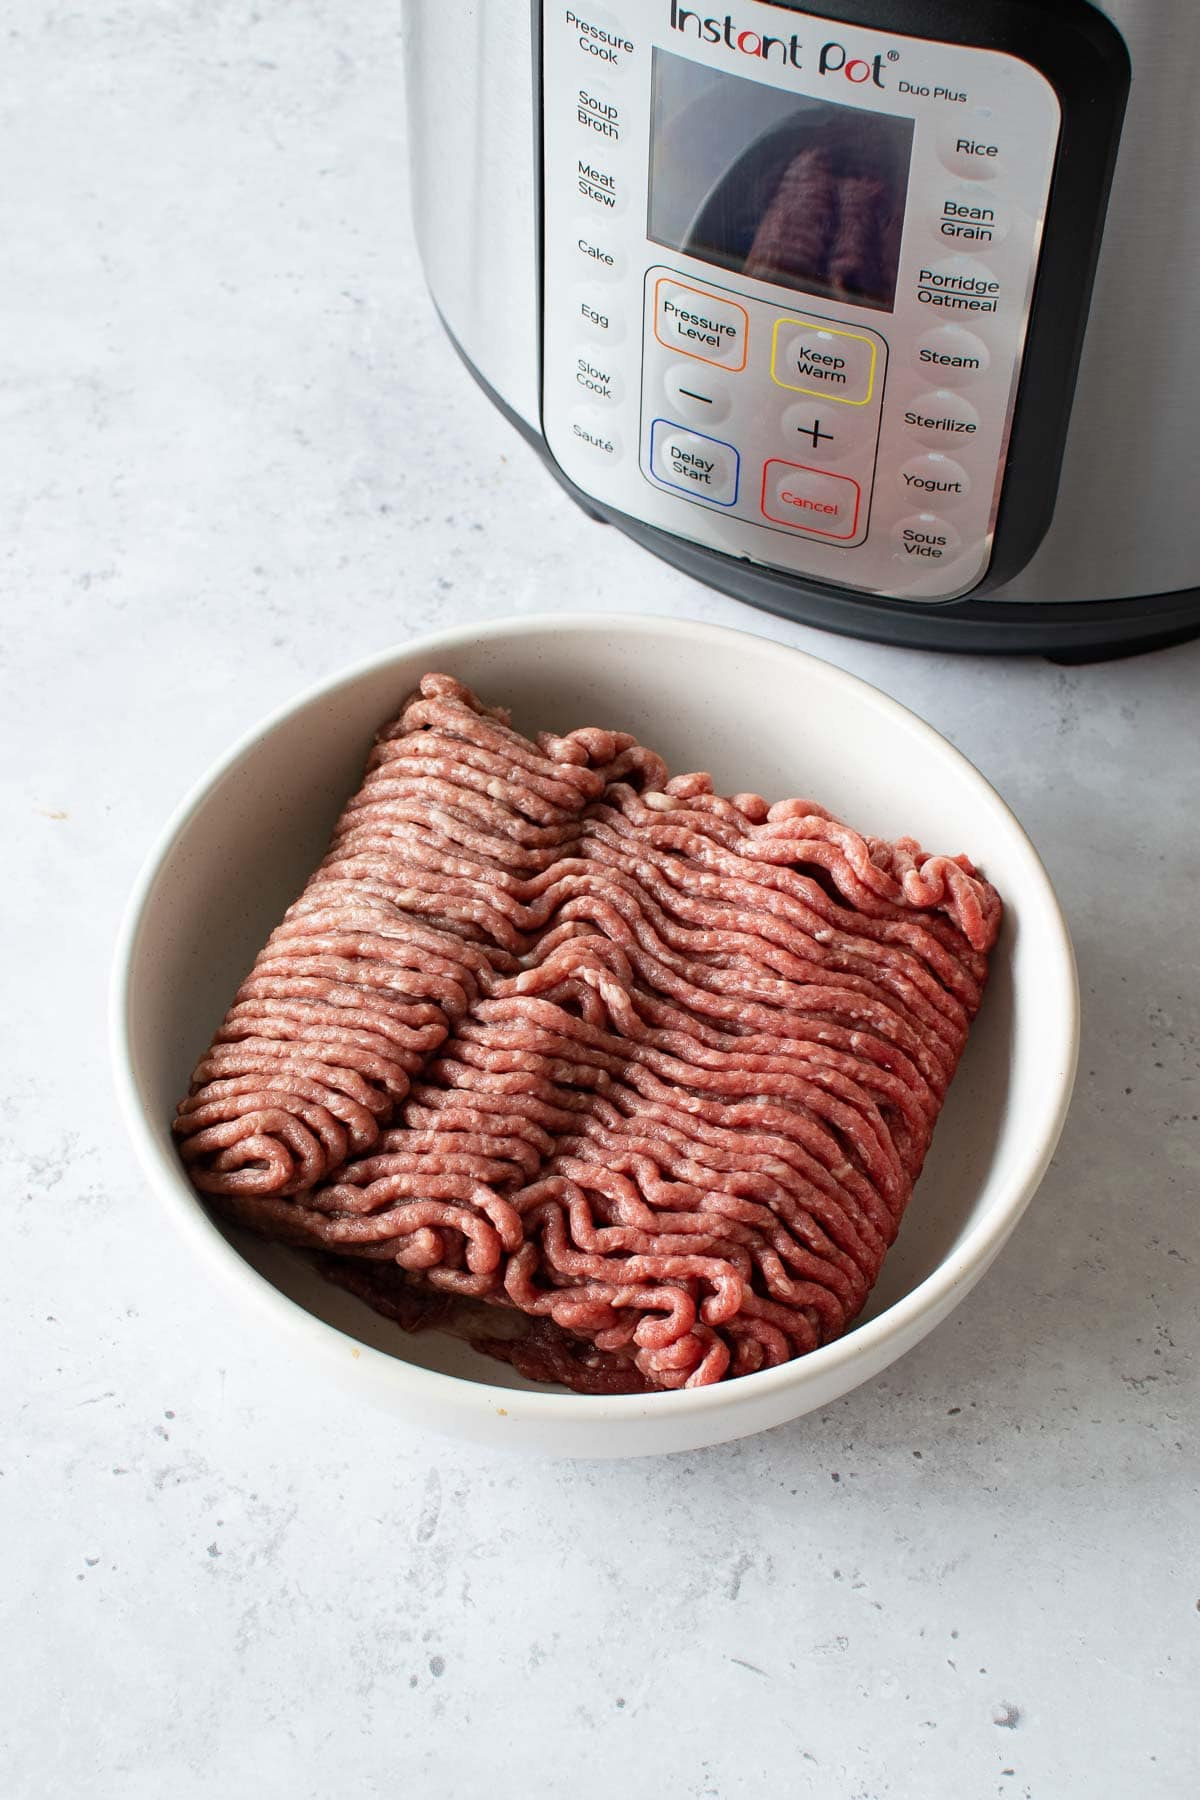 Ground beef in front of an Instant Pot.